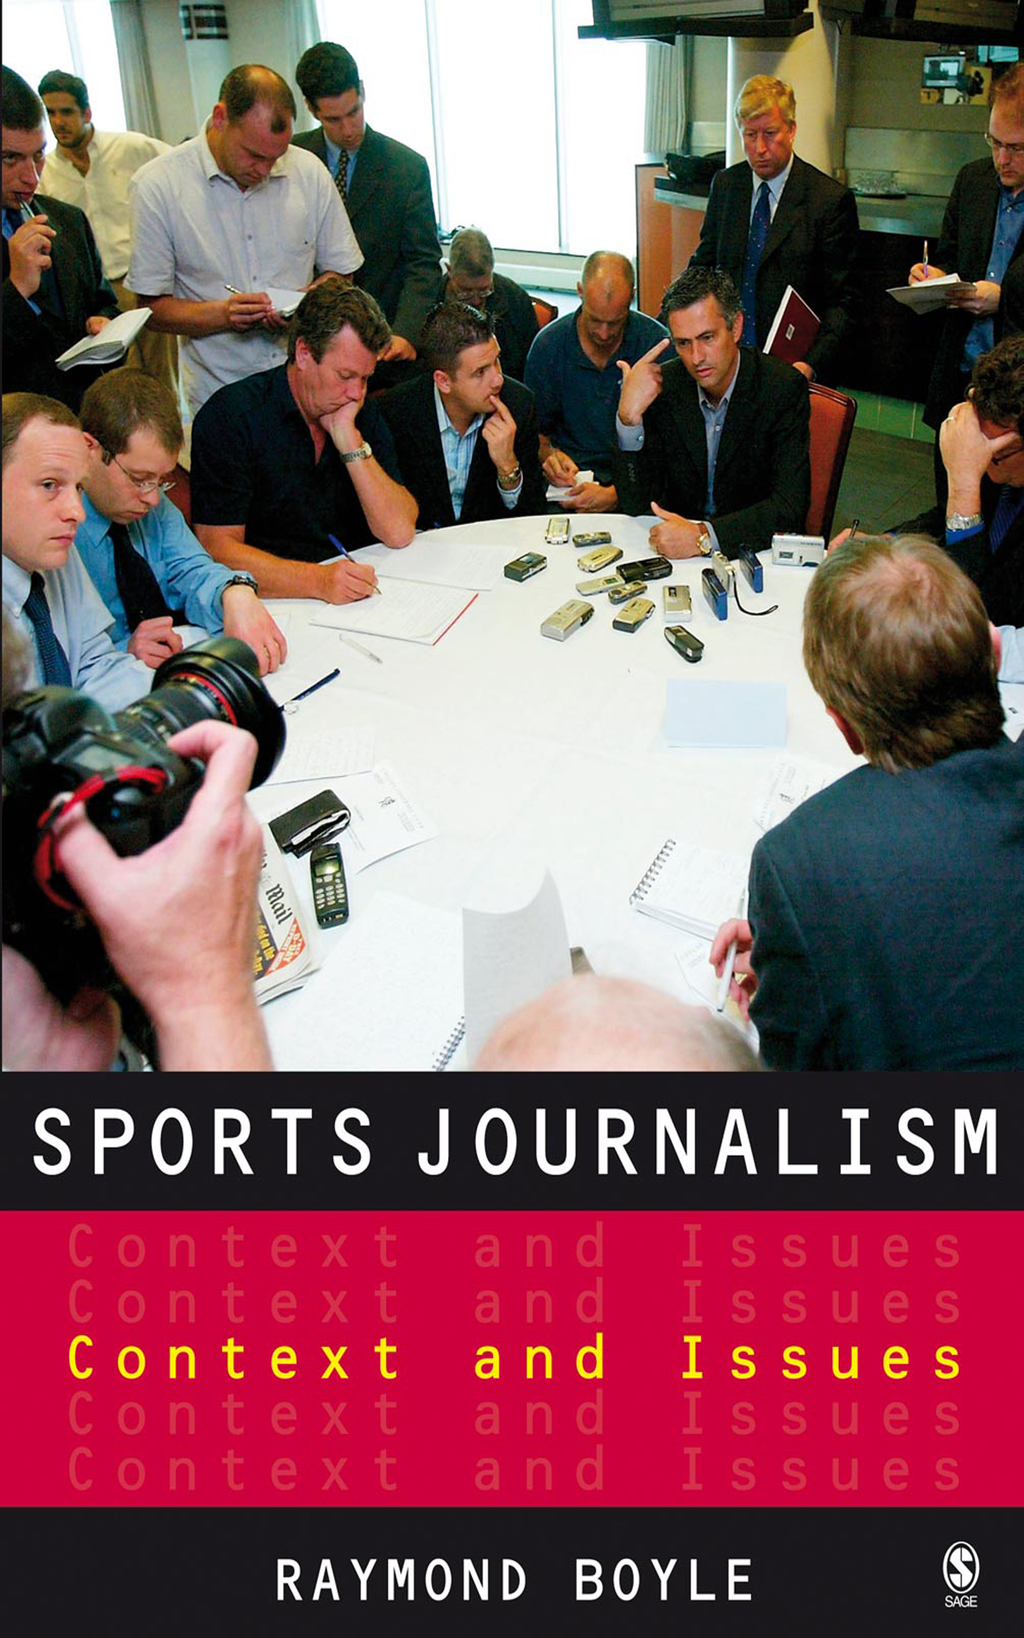 Sports Journalism Context and Issues